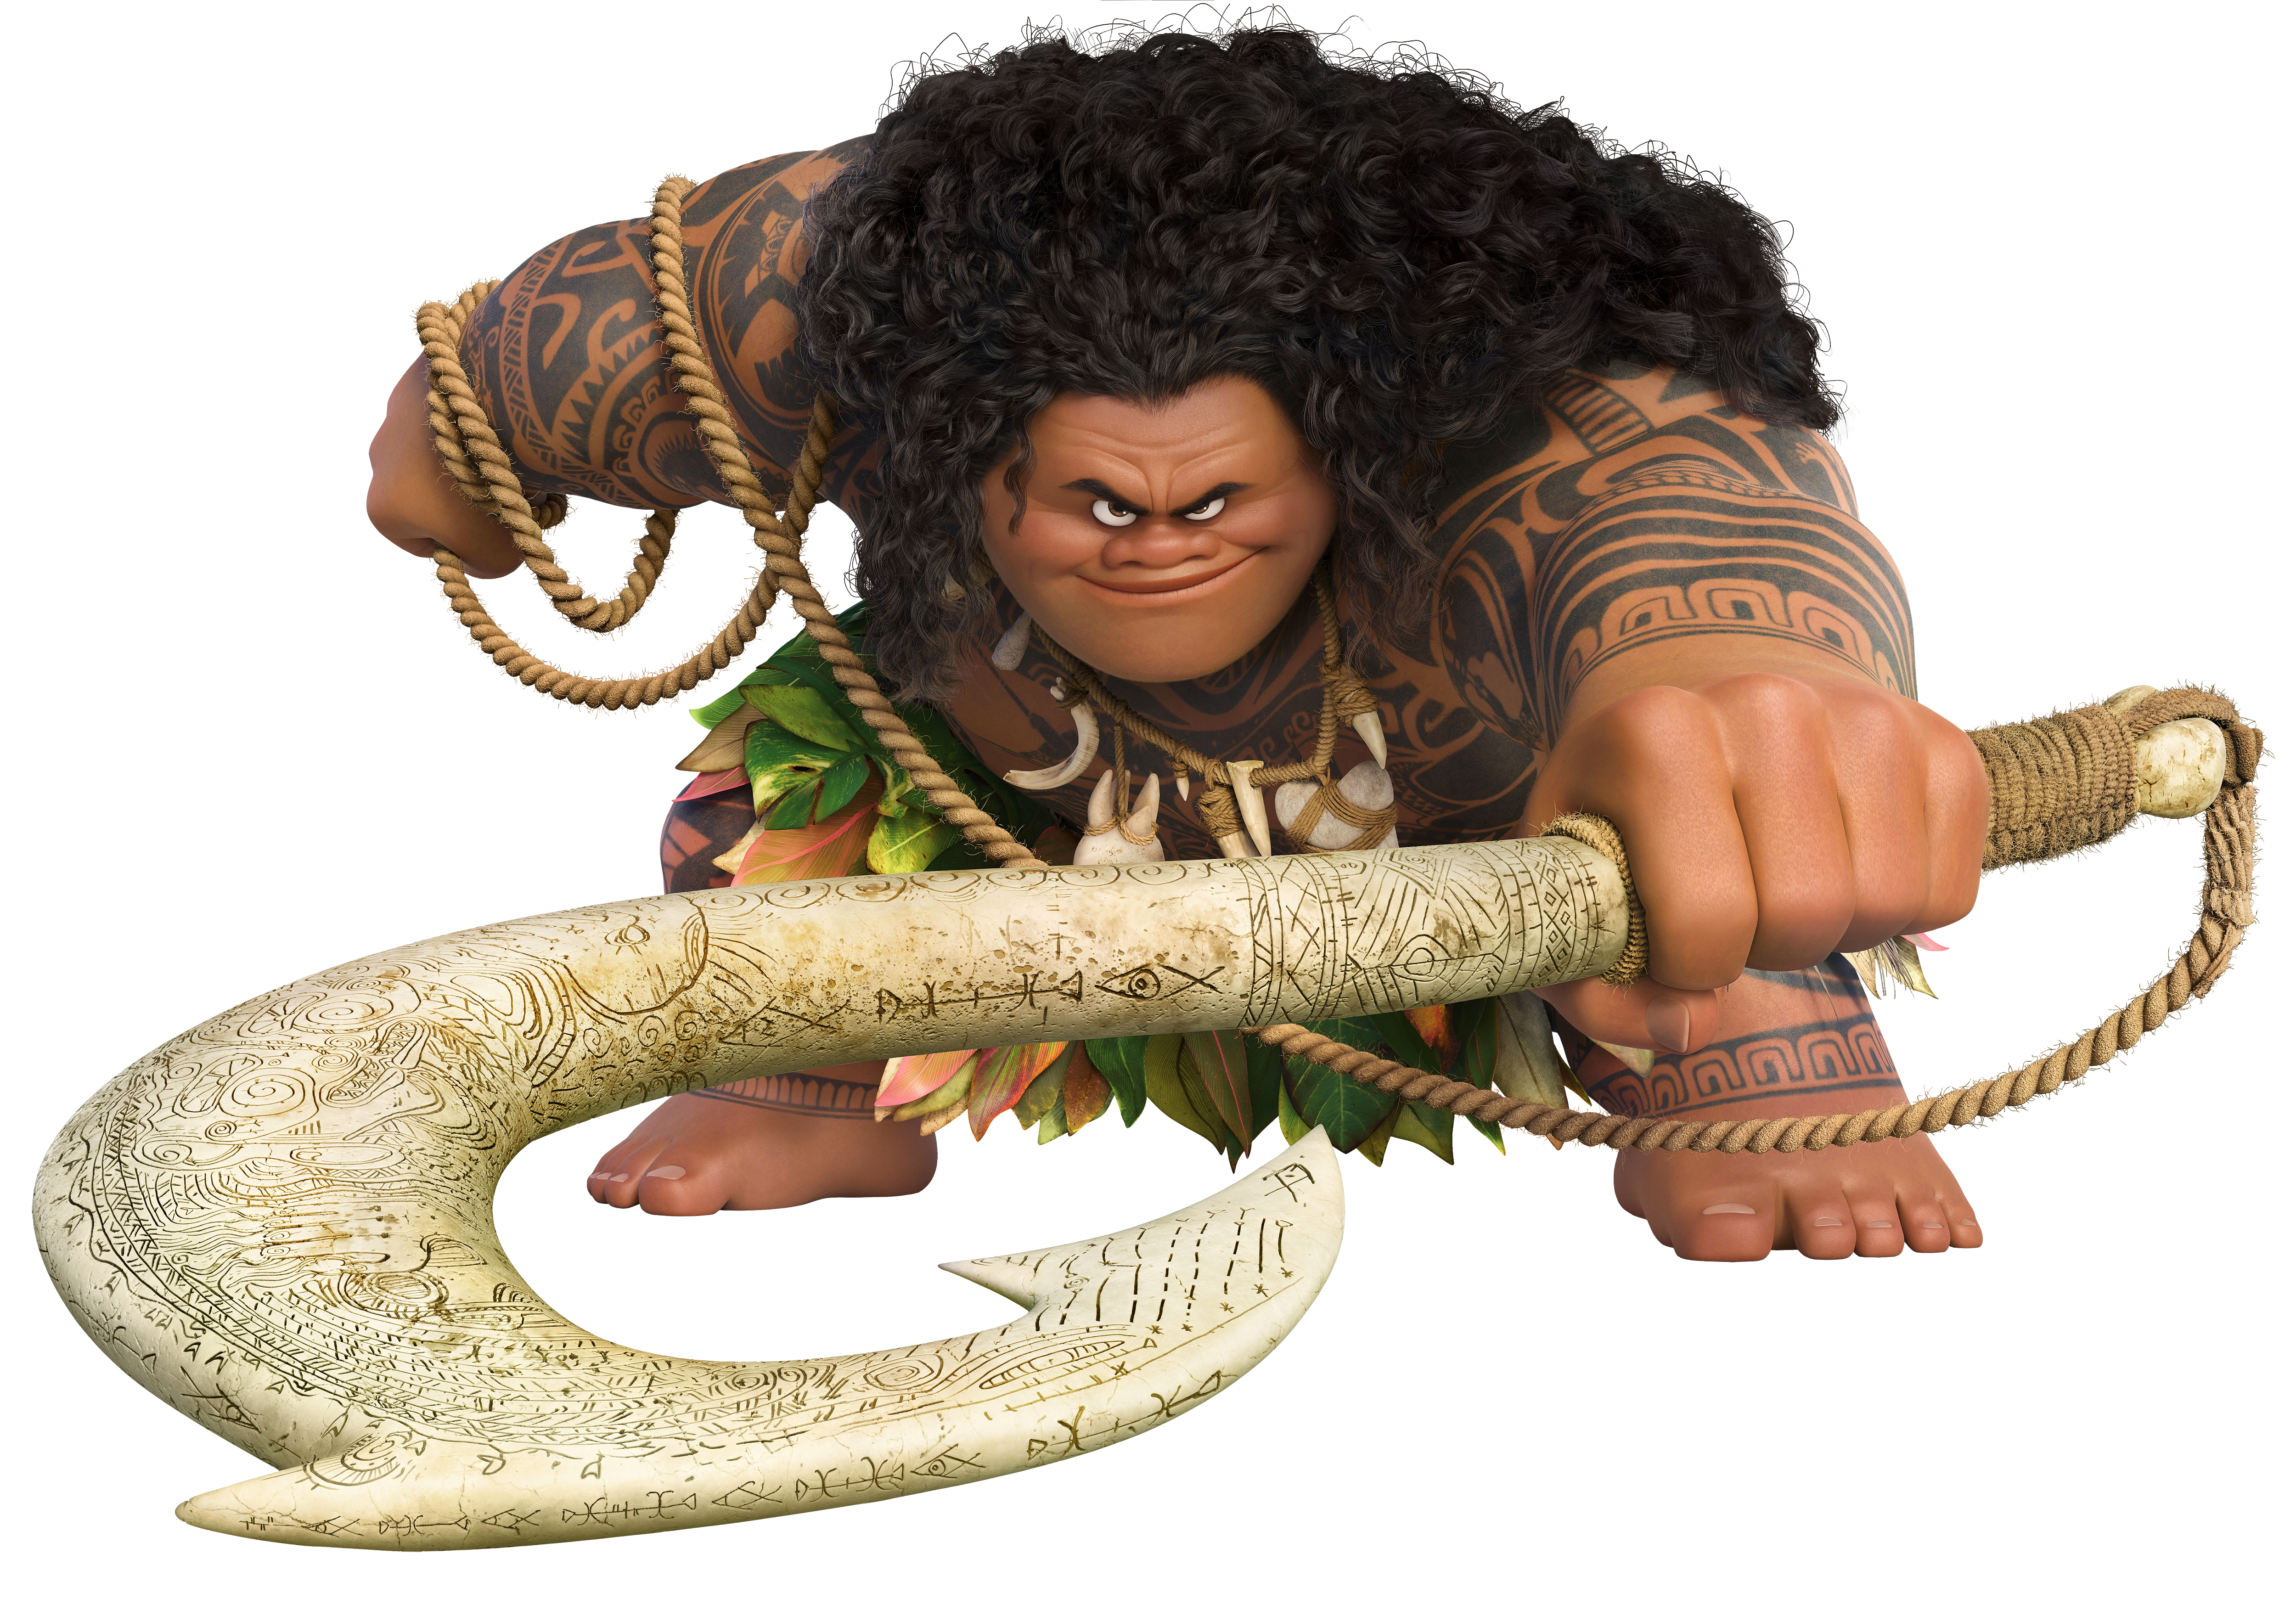 Maui Moana Disney Large Transparent Png Image Gallery Yopriceville High Quality Images And Transparent Png F Disney Moana Maui Moana Disney Princess Moana